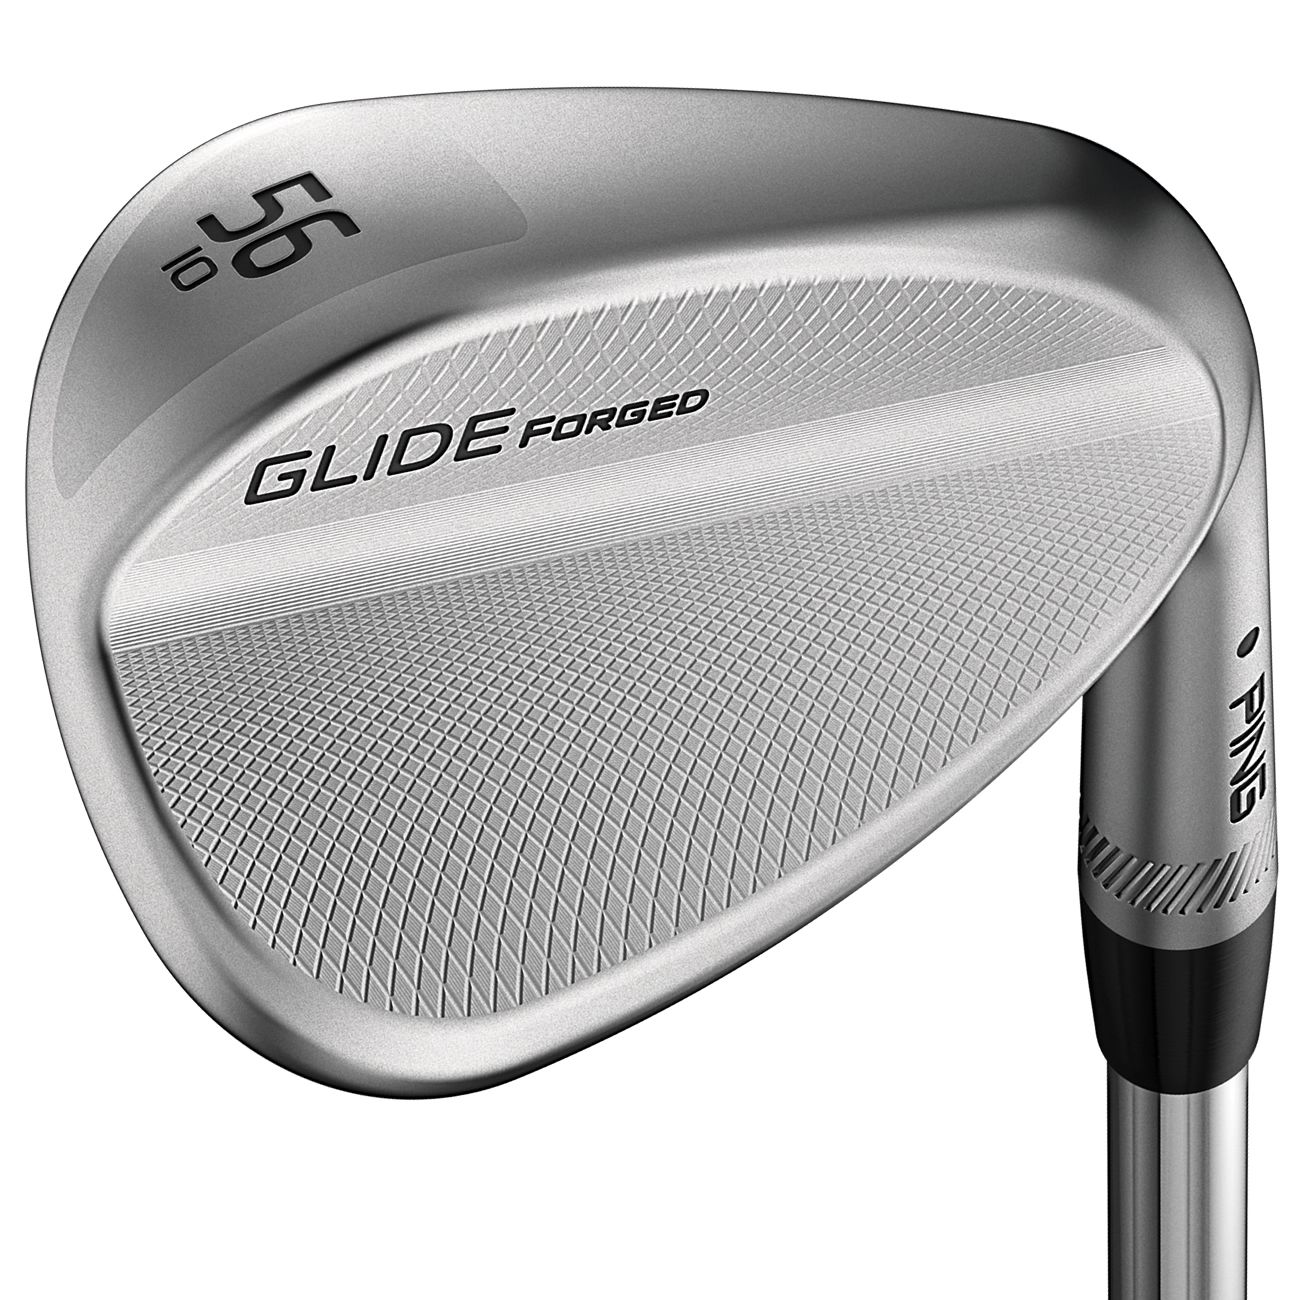 Ping Glide Forged Golf Wedge